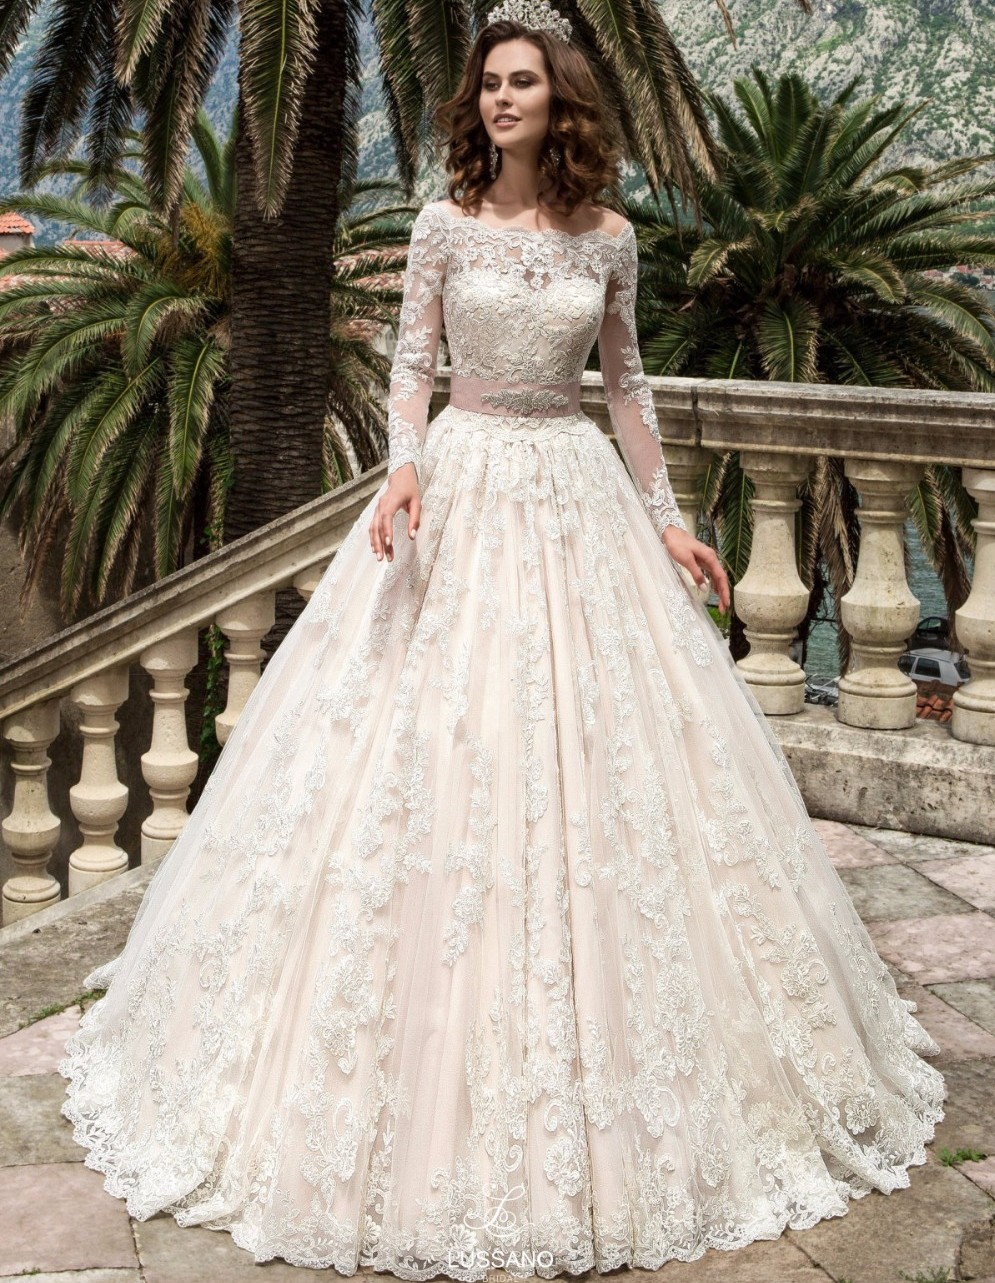 Vestido de noiva Sheer Back Long Sleeves Wedding Dresses Pearls Lace Appliques Ball Gown Wedding Dress Bridal Gowns Casamento